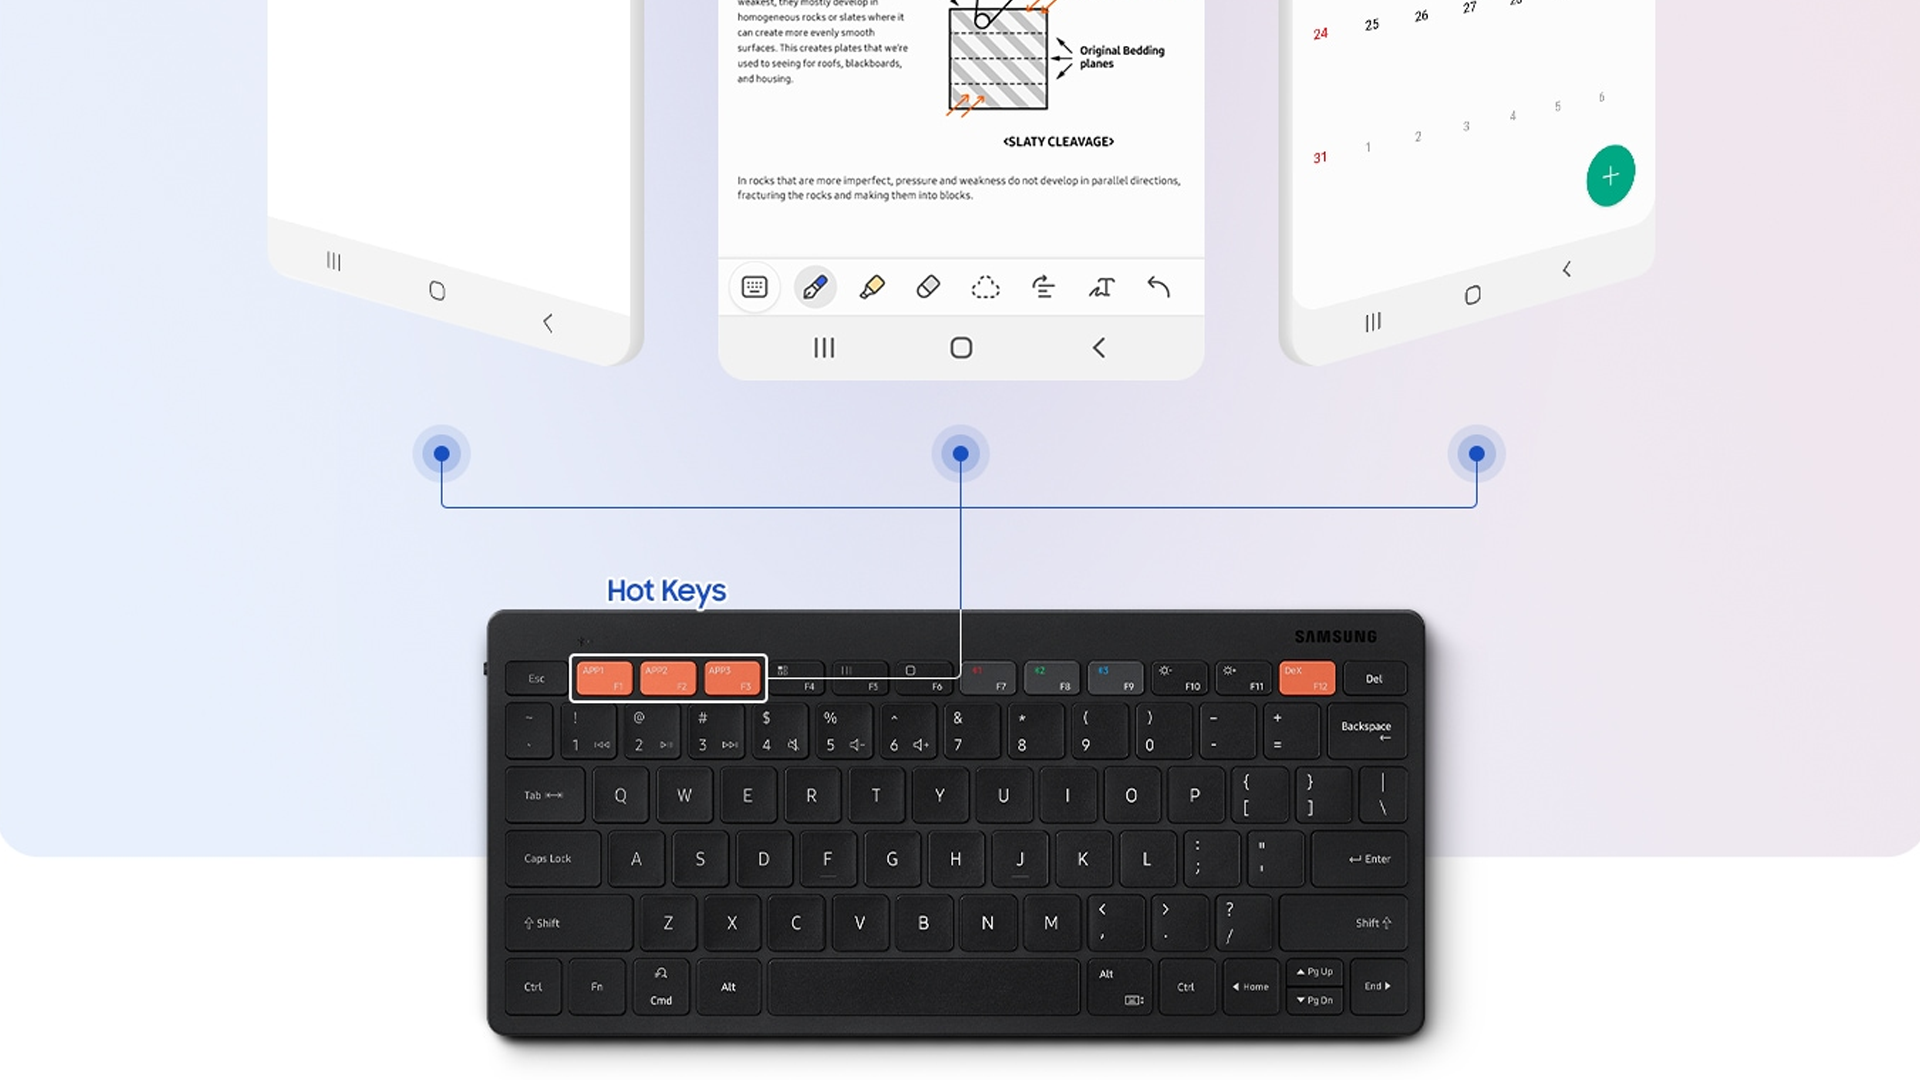 An illustration of the Samsung Smart Keyboard Trio's shortcut keys functionality.